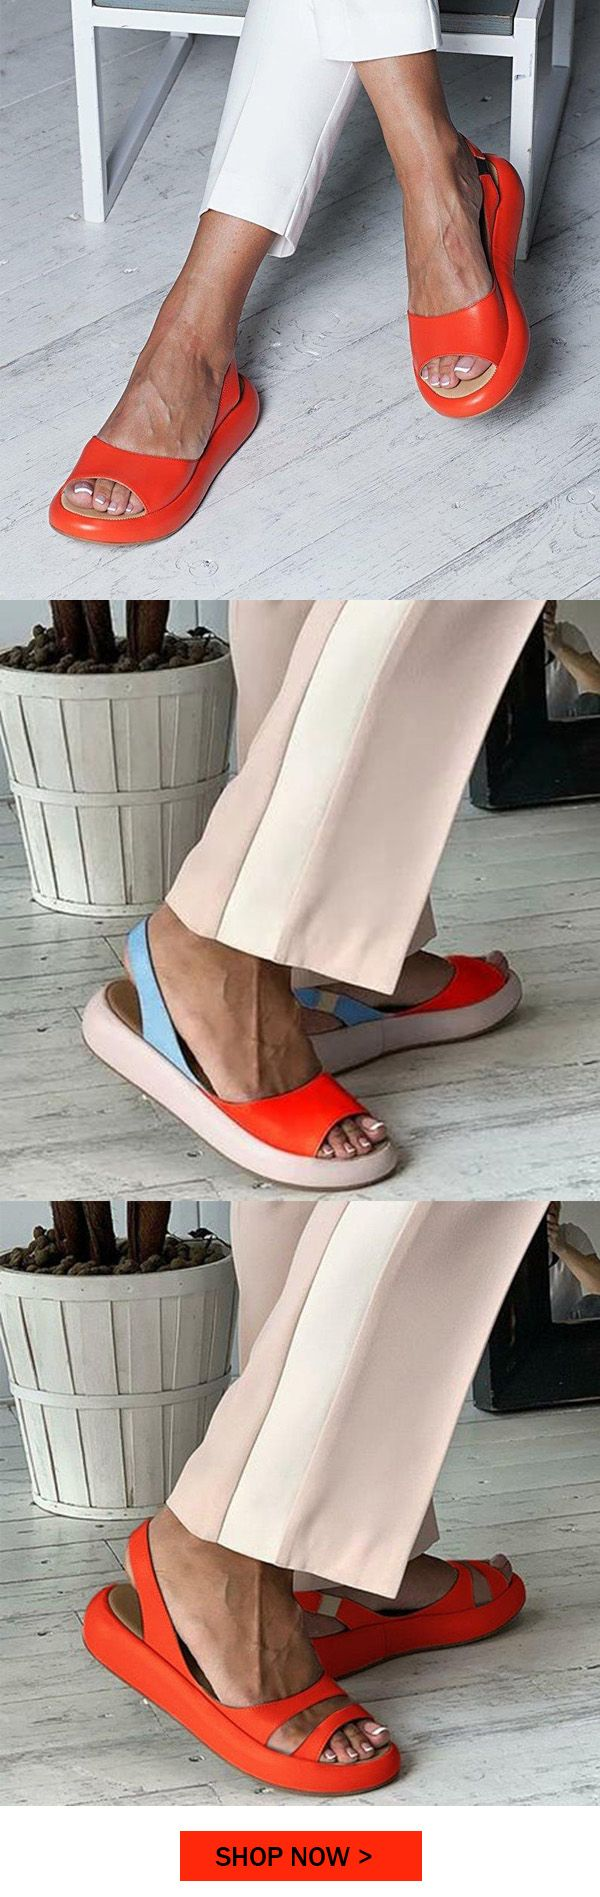 Hot Sale ! Women Casual Summer Sandals — Up to 70% OFF, Must Have Them ! #sandal #sale – z My Style